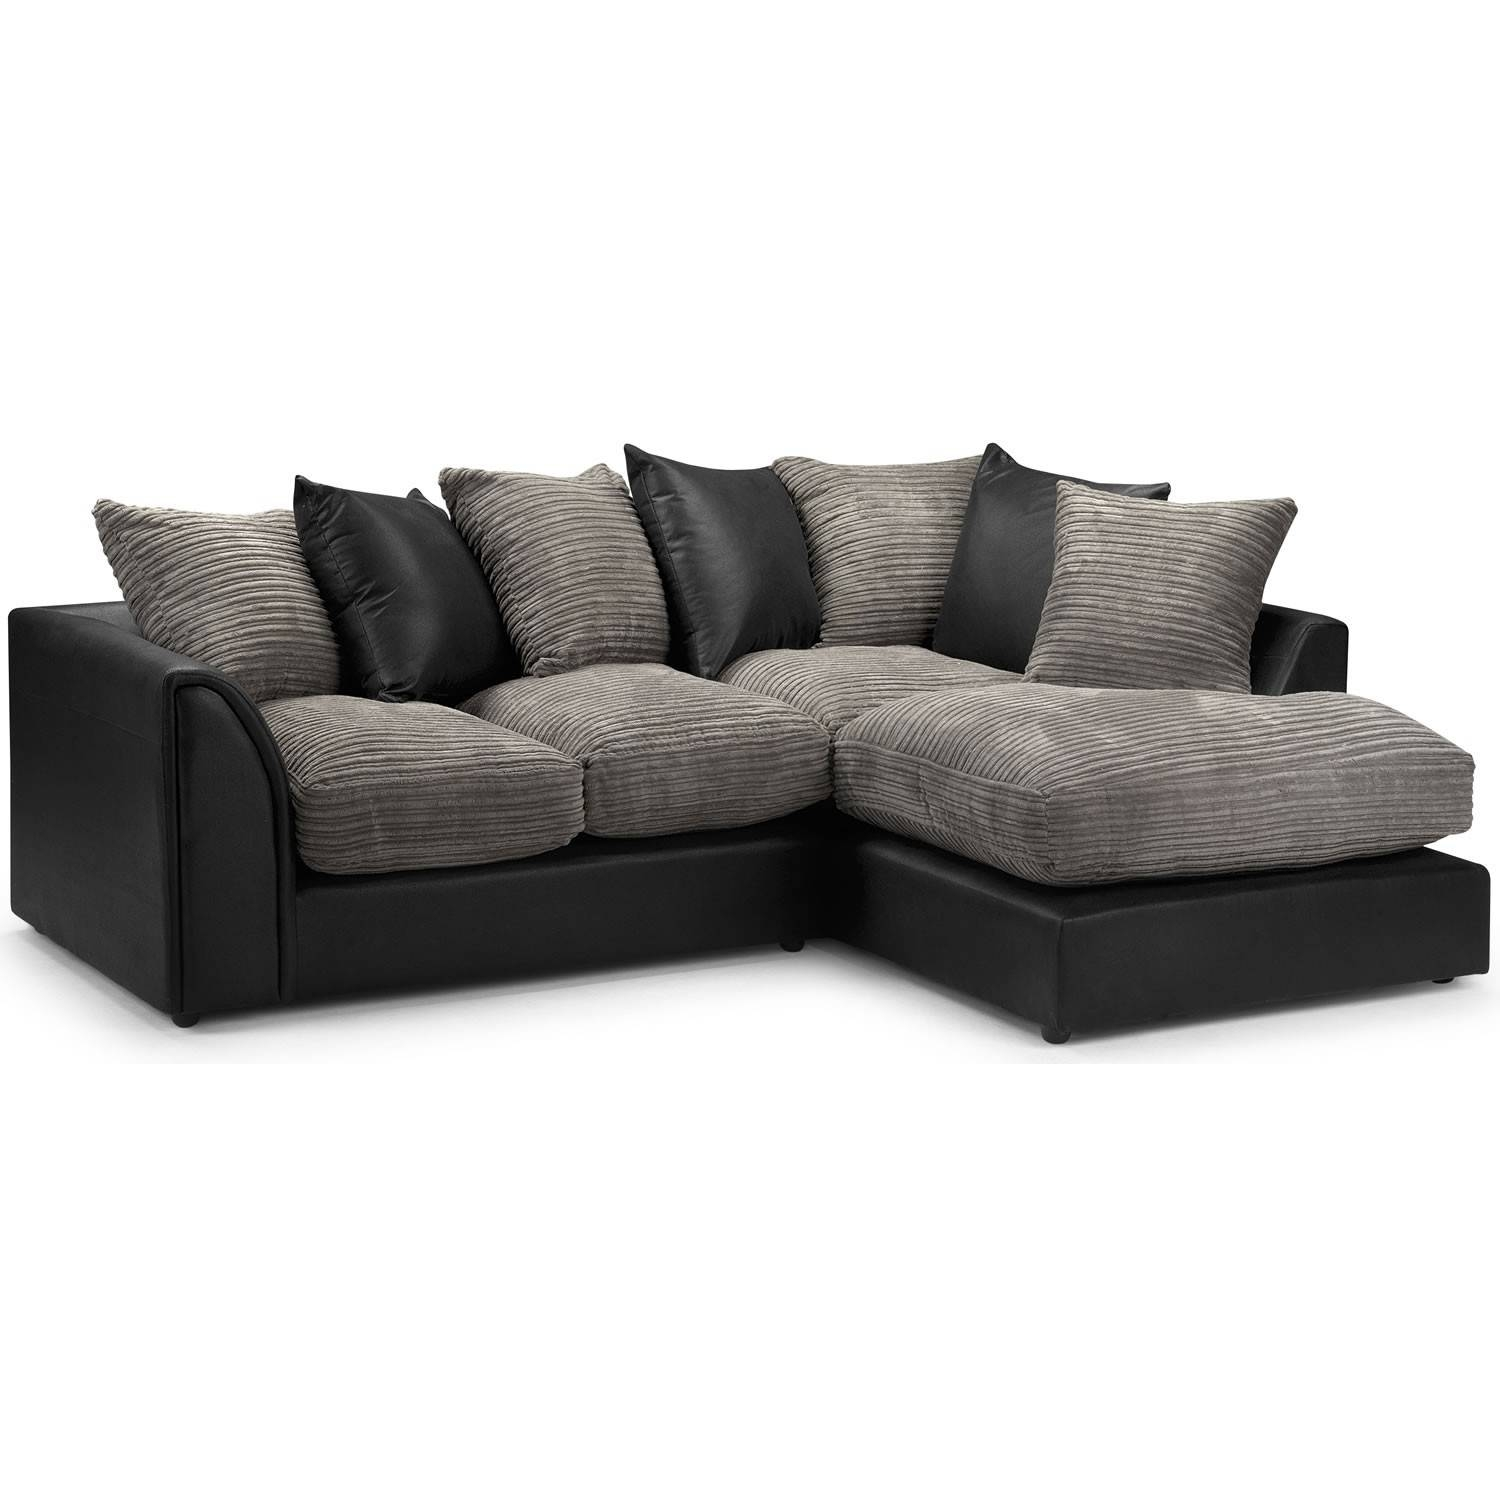 Modern Corner Sofa Ideas Nice Home Design pertaining to Cheap Corner Sofas (Image 13 of 30)